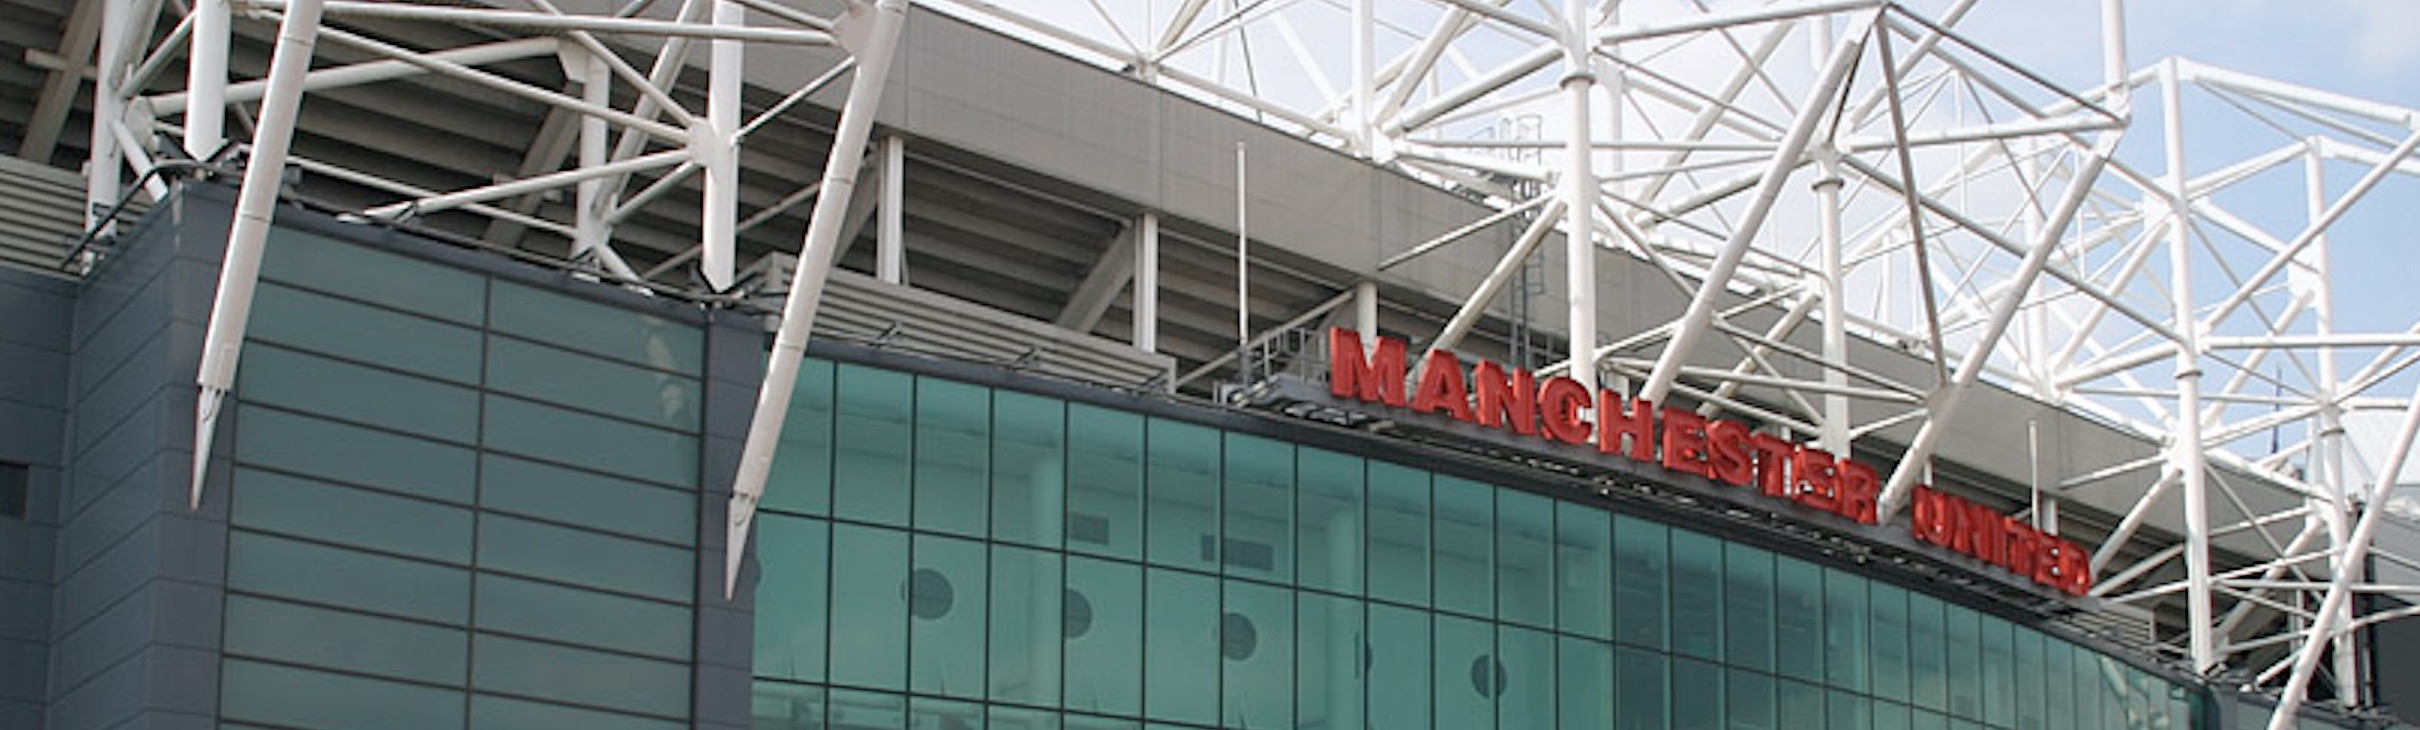 Man United V Chelsea - Daytrip by Coach & Ferry